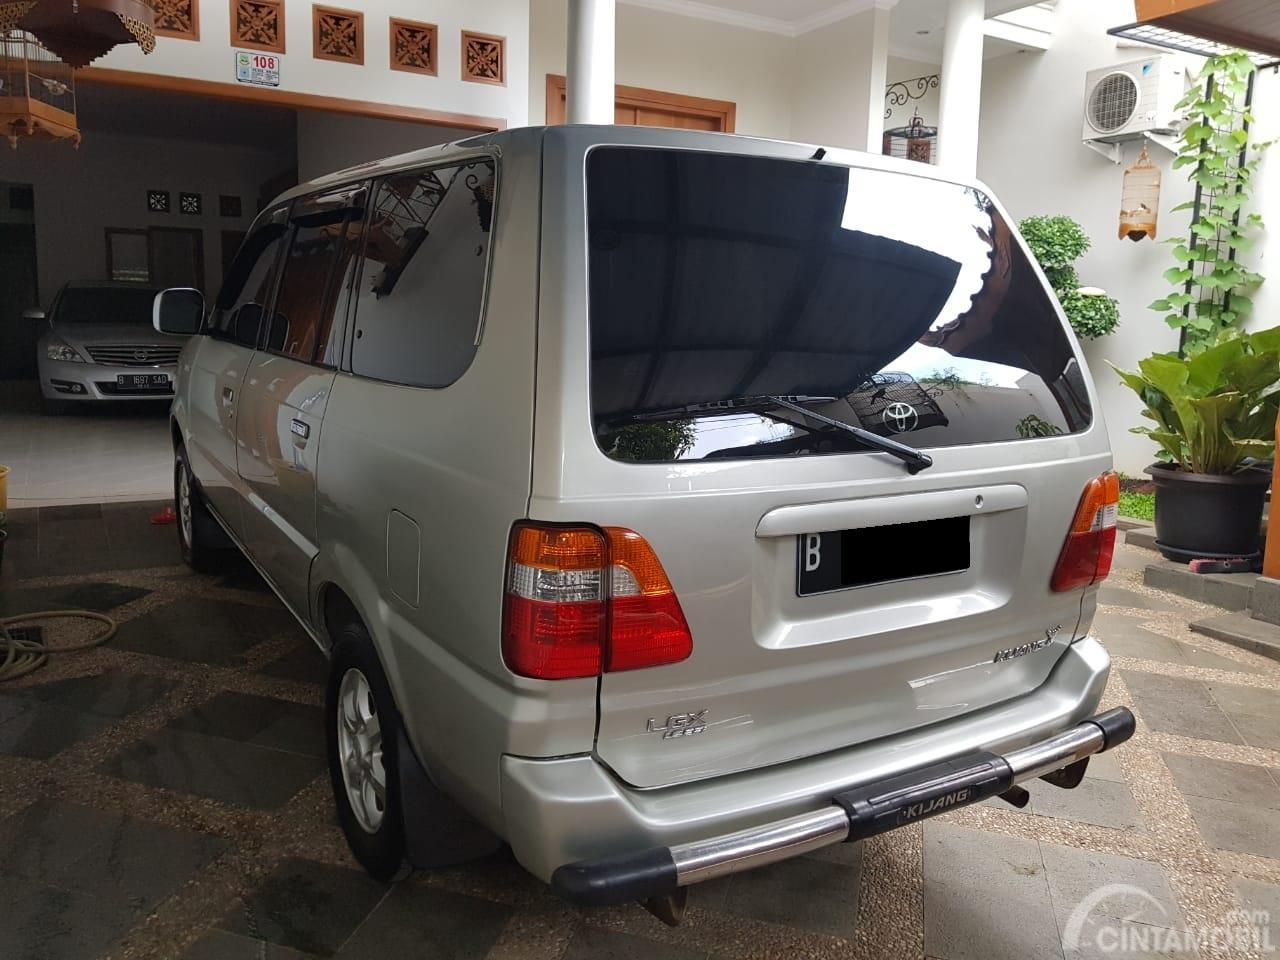 Review Toyota Kijang Lgx Efi Facelift 2002